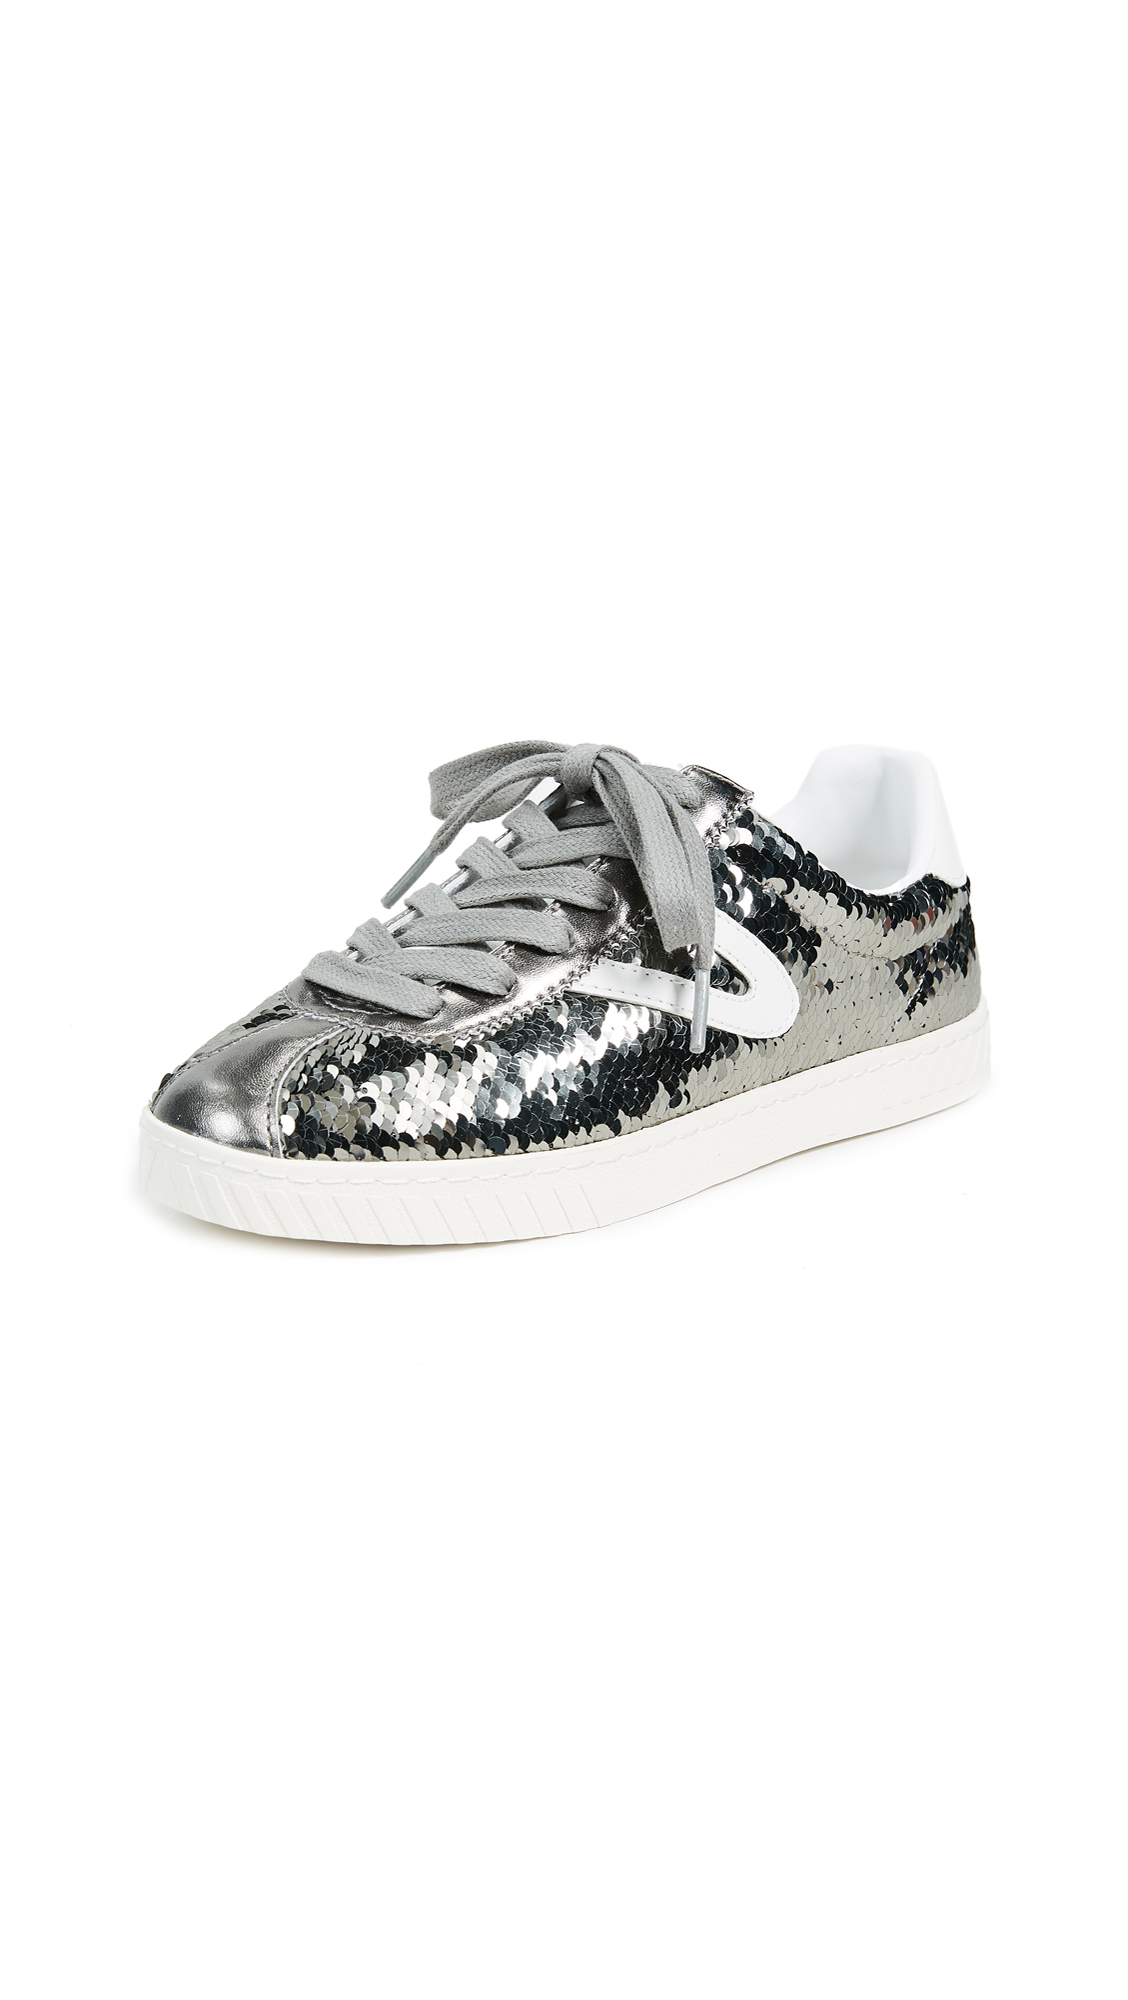 Tretorn Camden Metallic Lace Up Sneakers - Silver